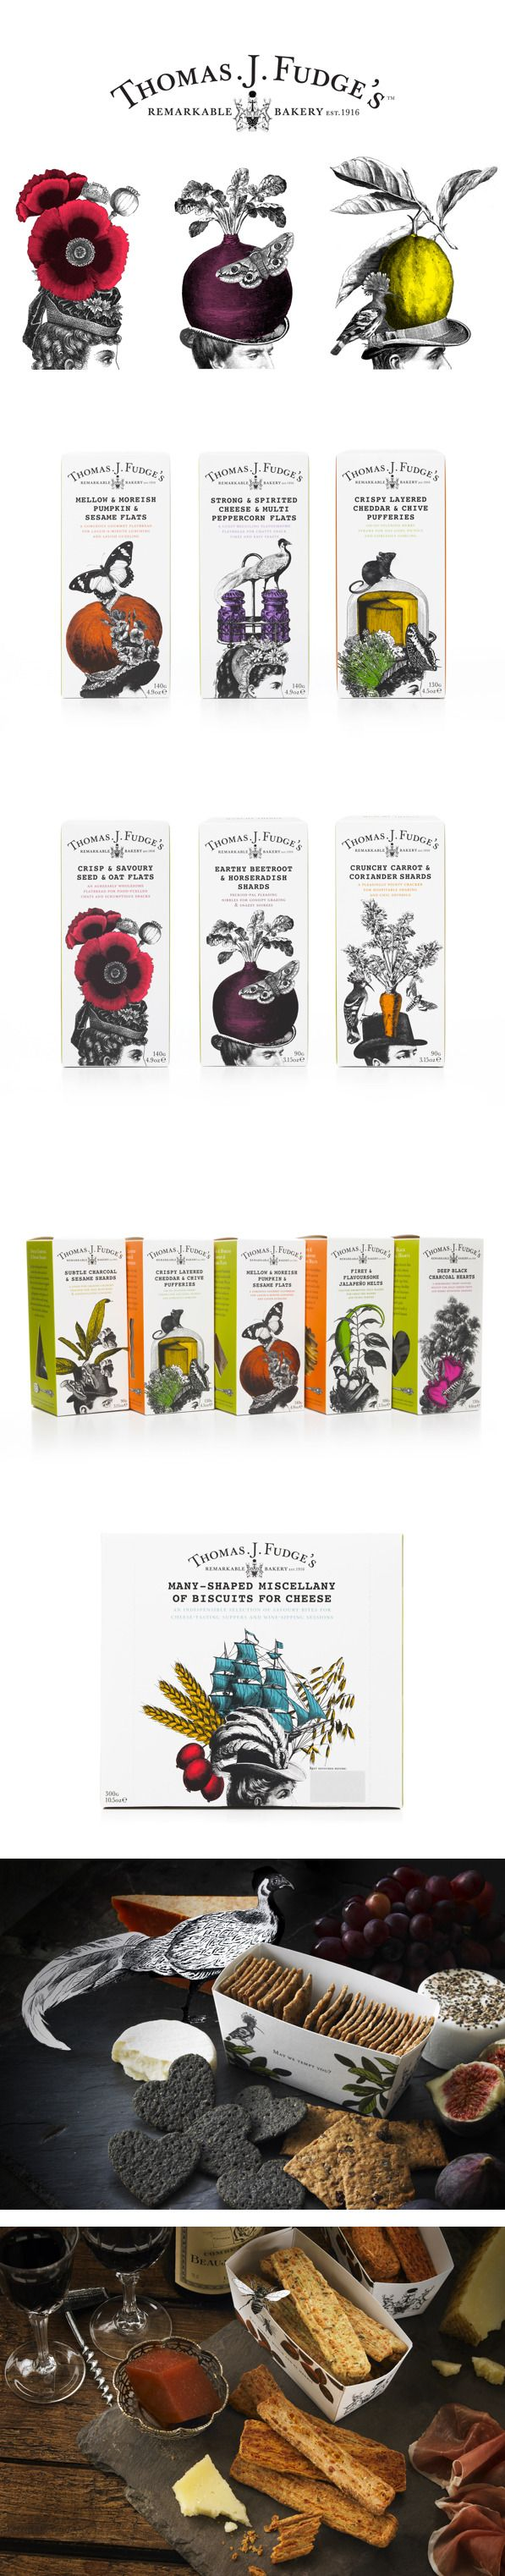 Thomas J Fudge's by Big Fish is awesome illustrated cracker #packaging PD